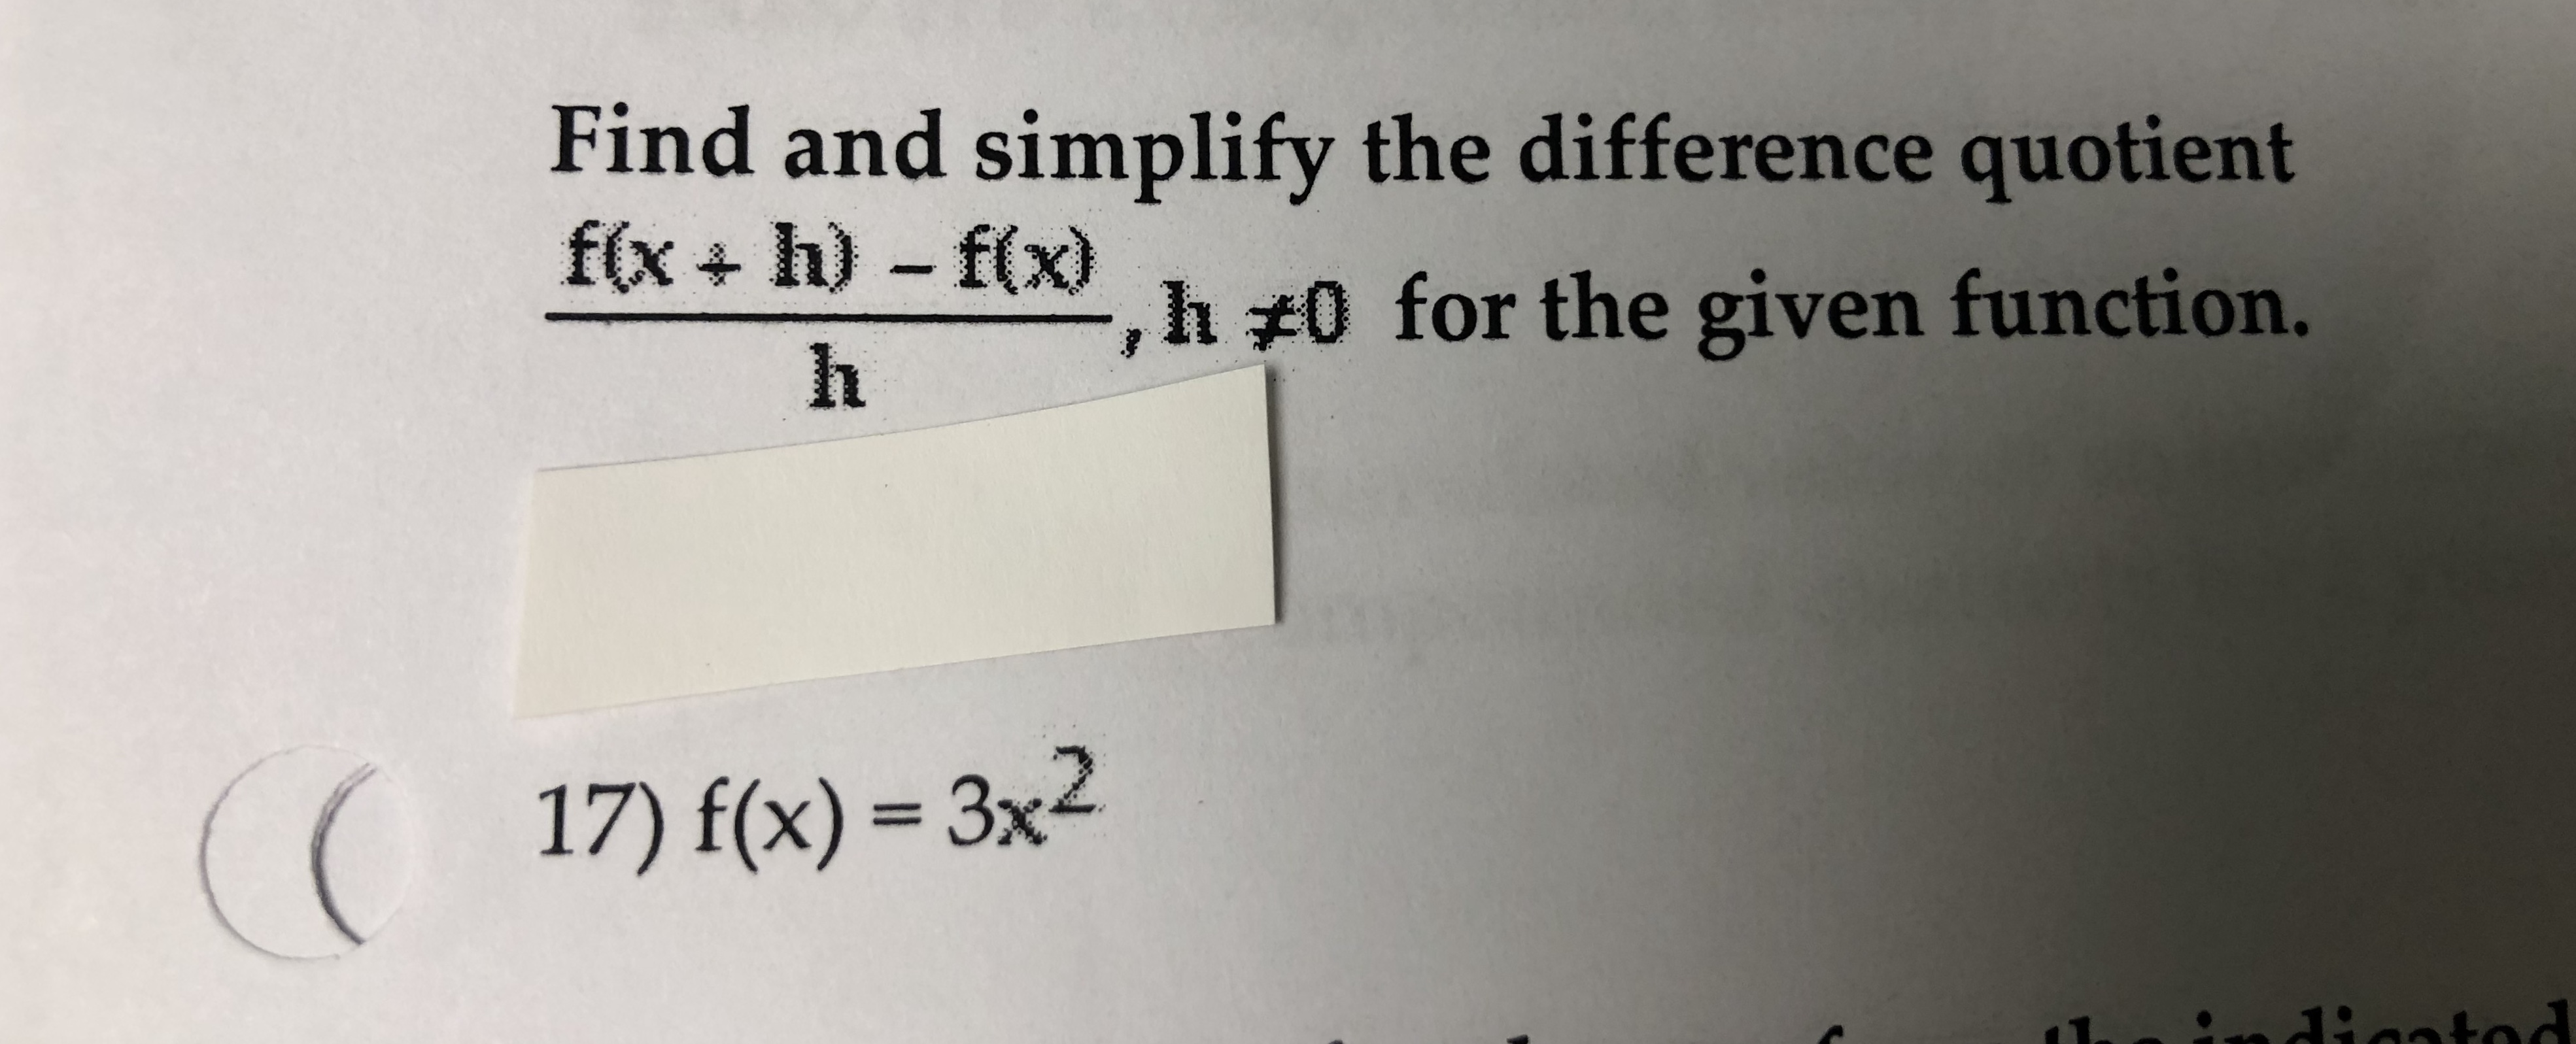 Simplify The Difference Quotient For The Given Function